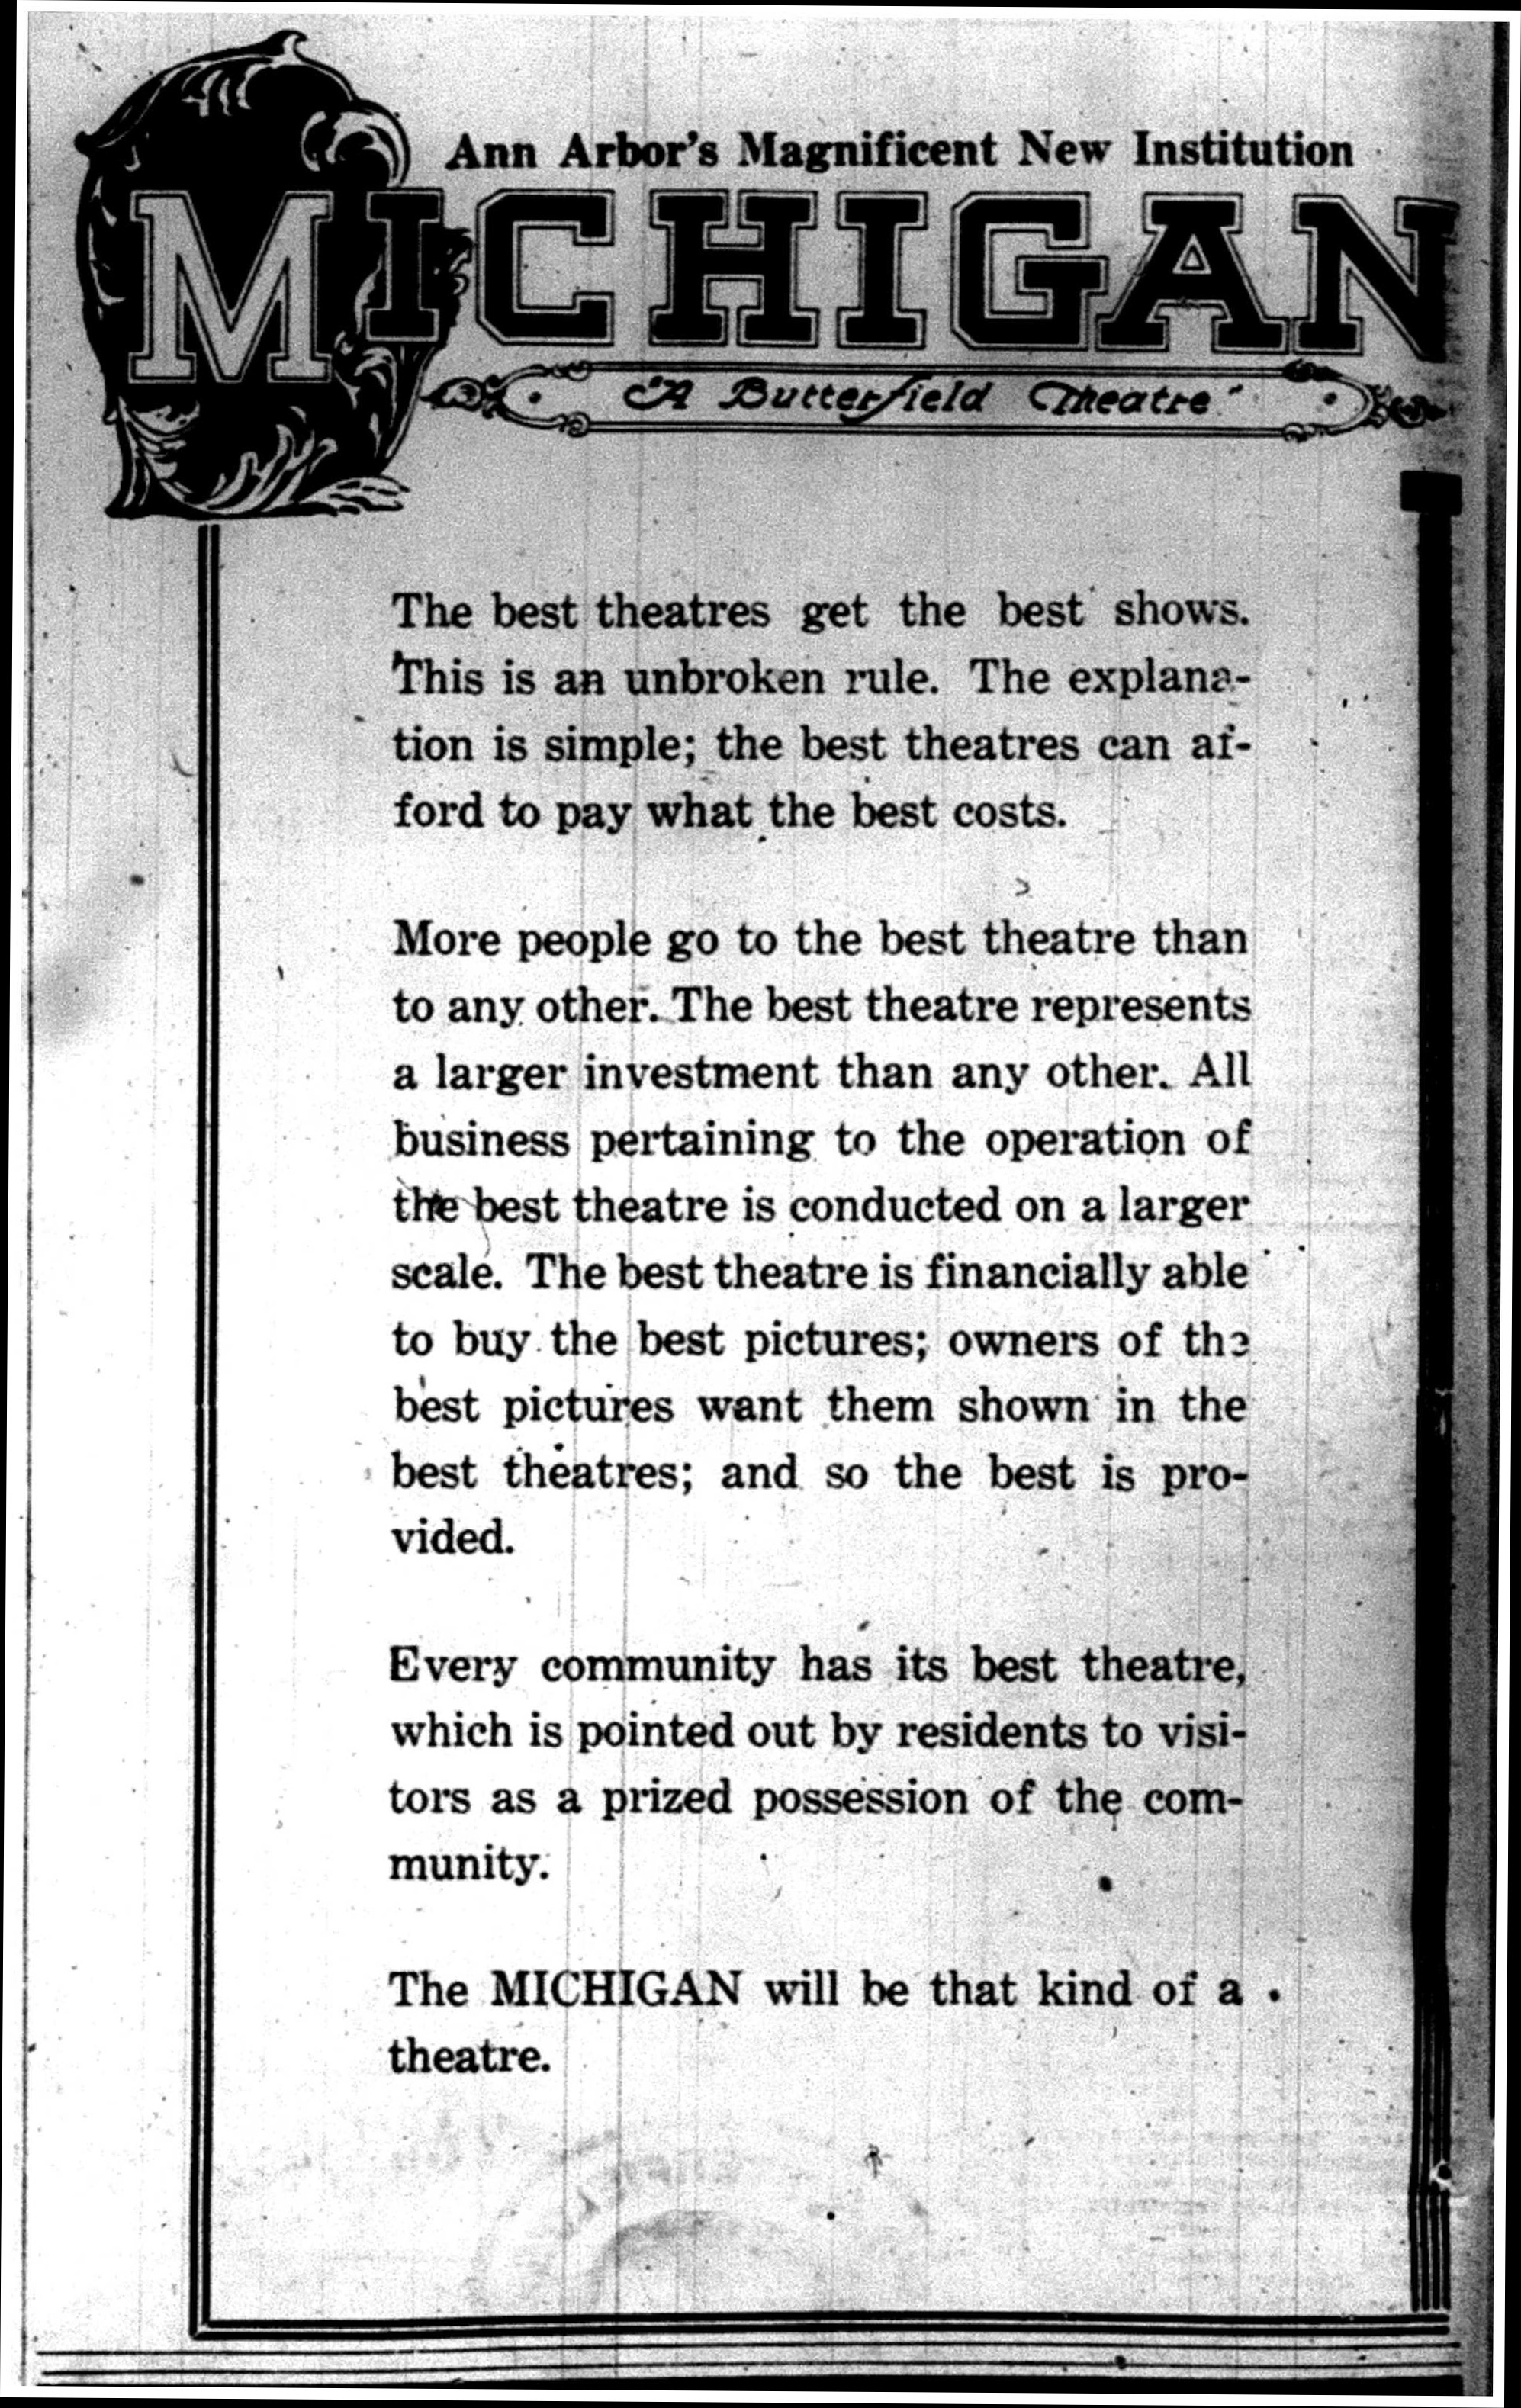 Michigan: A Butterfield Theatre [advertisement] image